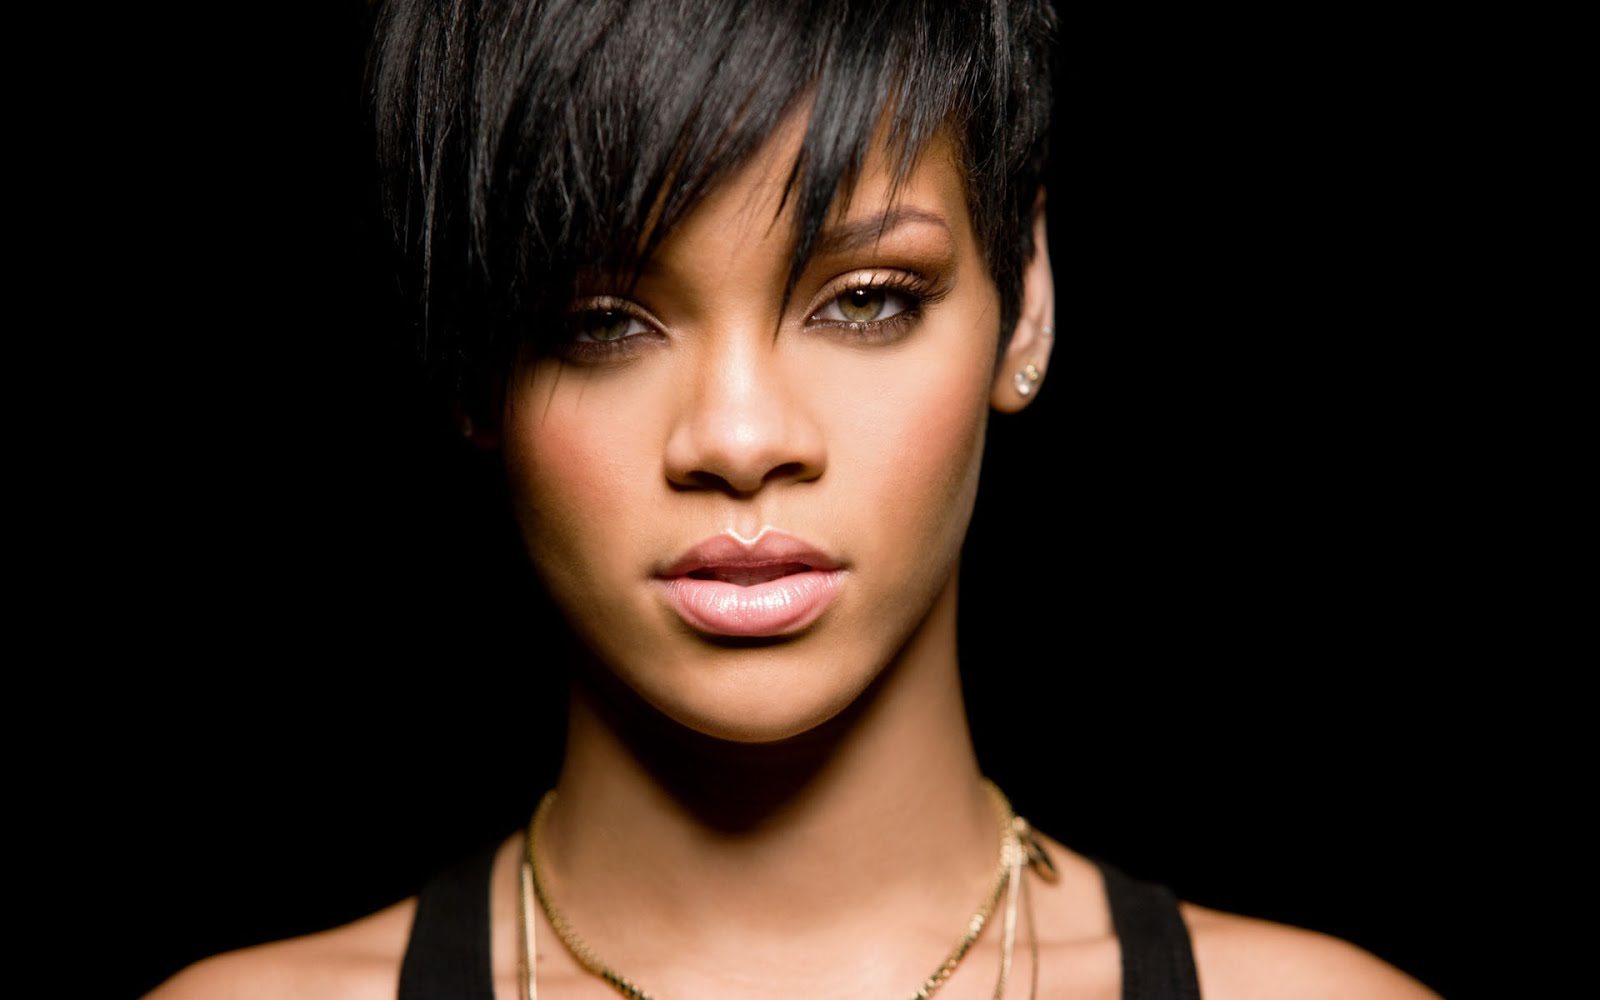 The movie battle campaign 1 indiegogo imdb rihanna was born in a parish in barbados called st michael she lived the life of a normal island girl going to combermere a top sixth form voltagebd Gallery